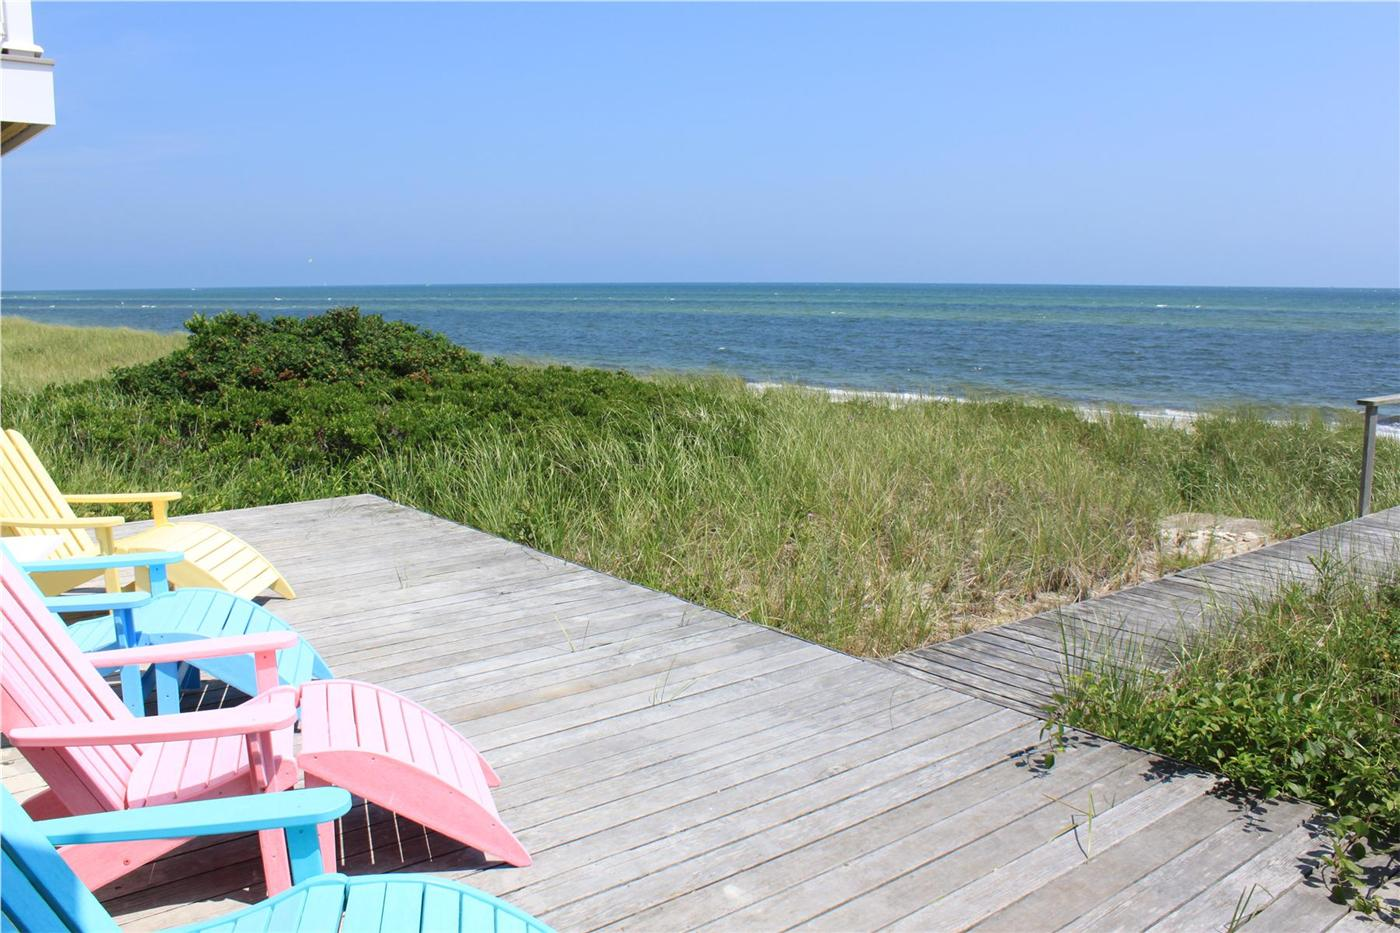 Yarmouth Vacation Rental Home In Cape Cod Ma 02673 130 Private Beach Outside The Back Door